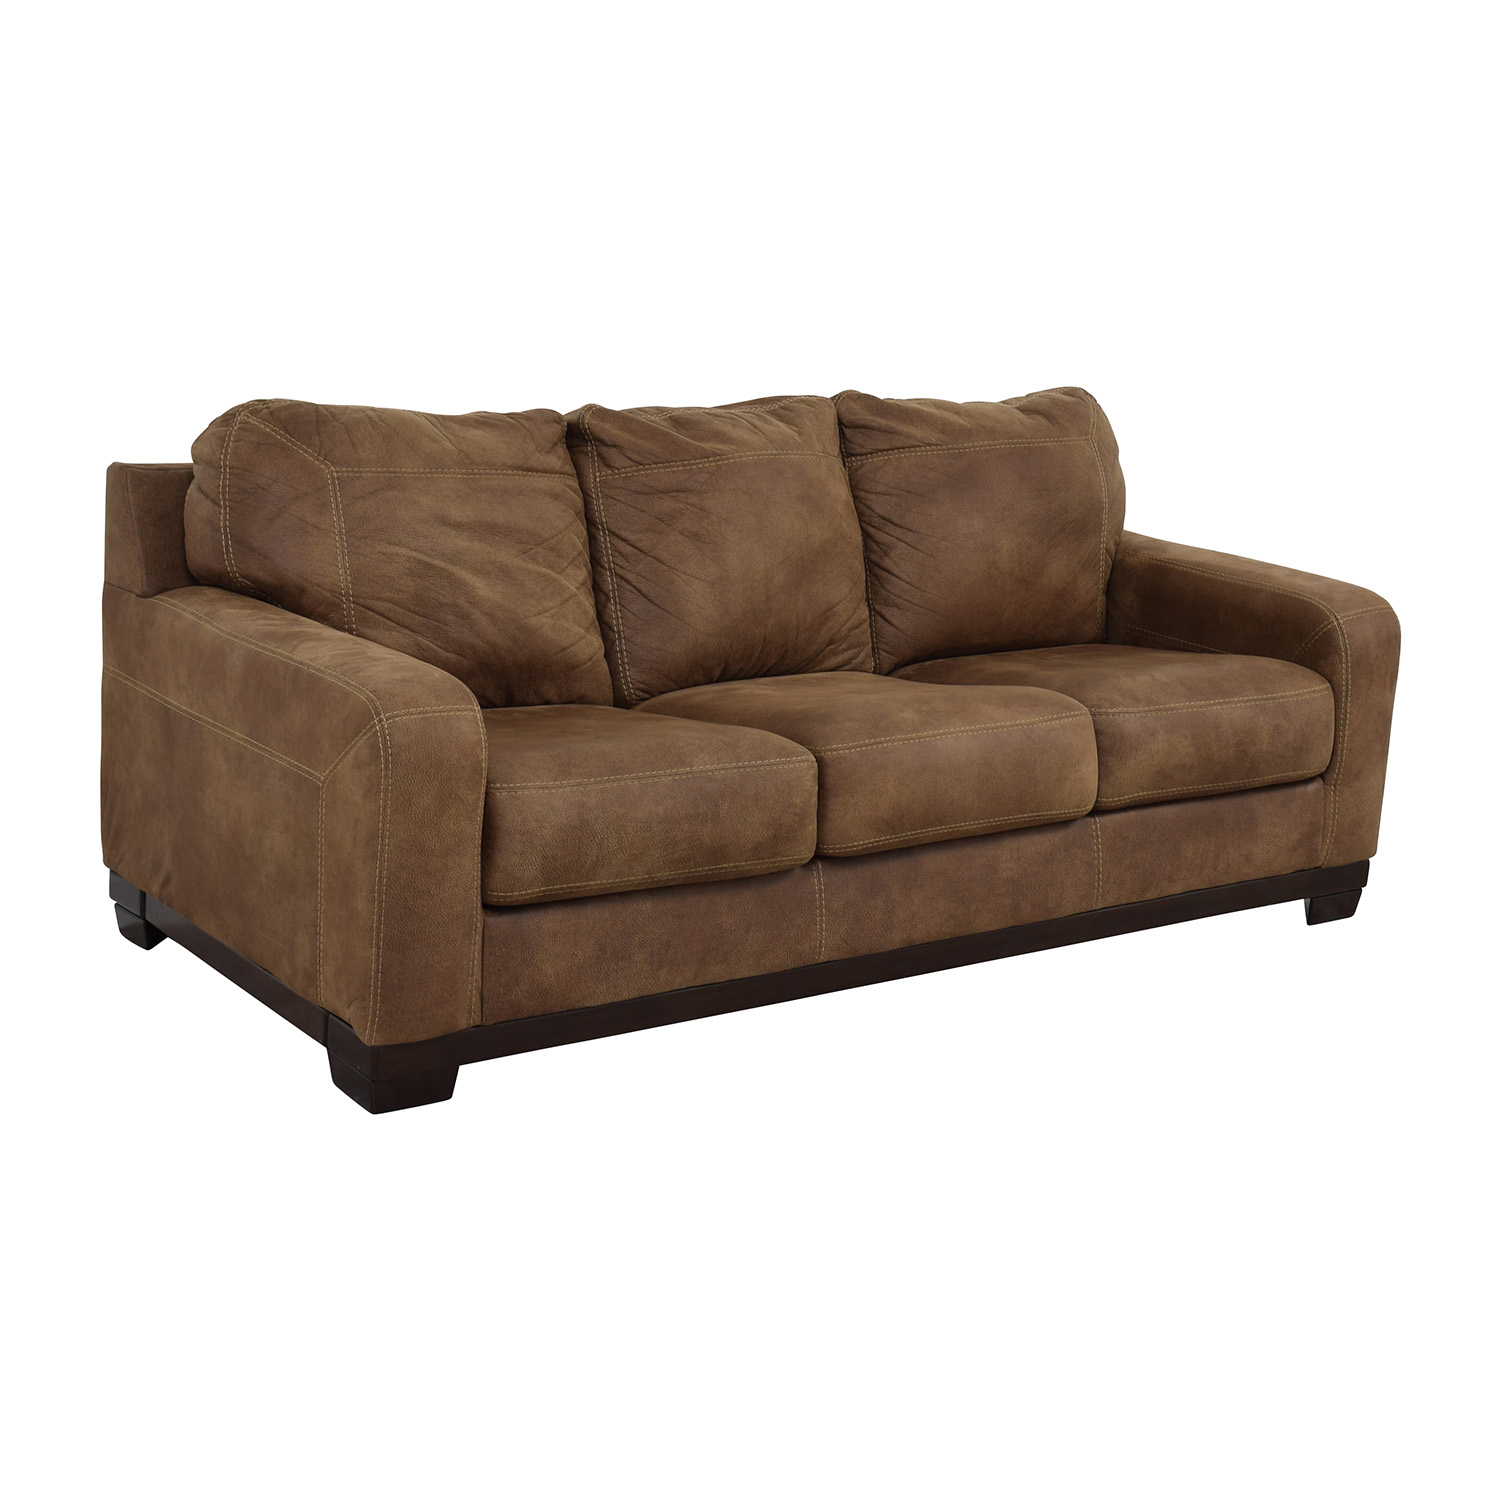 79 off ashley furniture ashley furniture kylun brown three cushion couch sofas